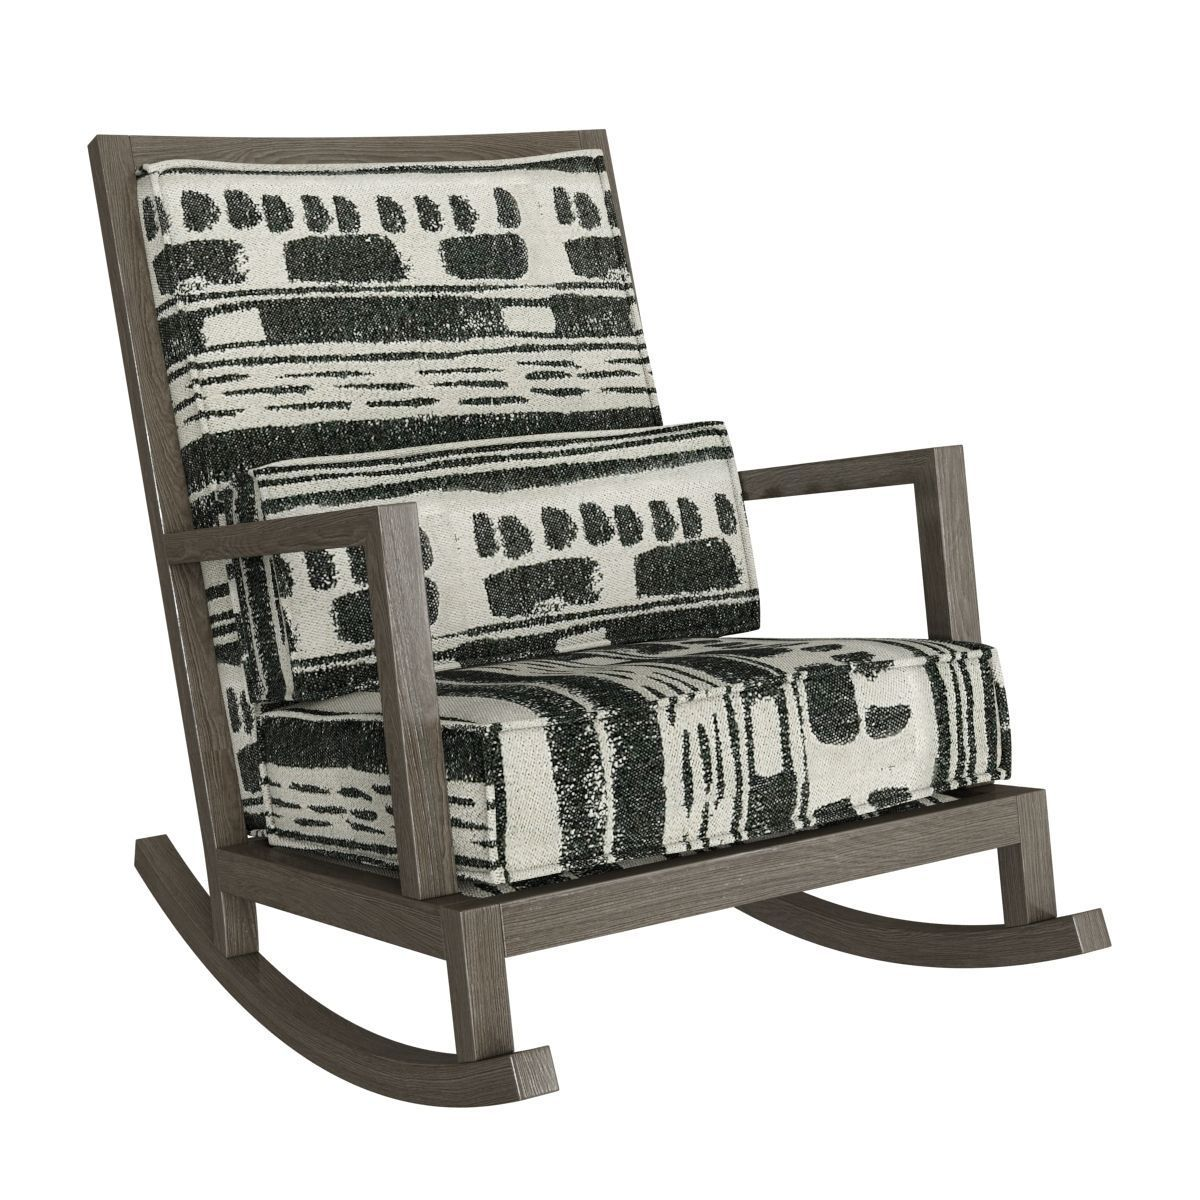 Crate And Barrel Rocking Chair Crate And Barrel Jeremiah Fabric Back Rocking Chair 3d Model